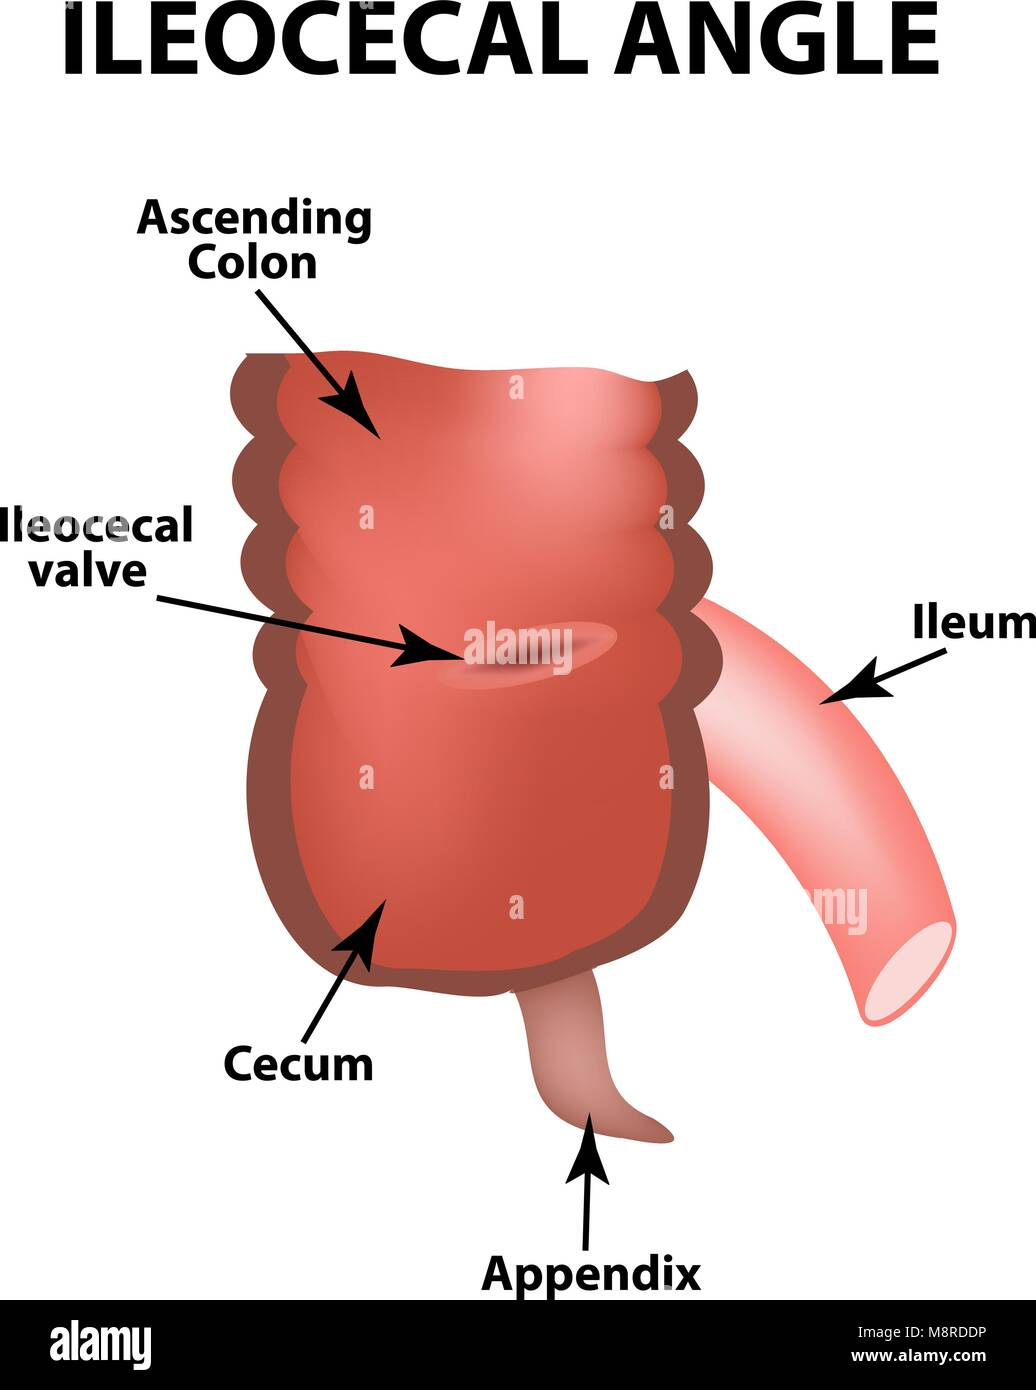 Ileum Stock Photos Ileum Stock Images Alamy